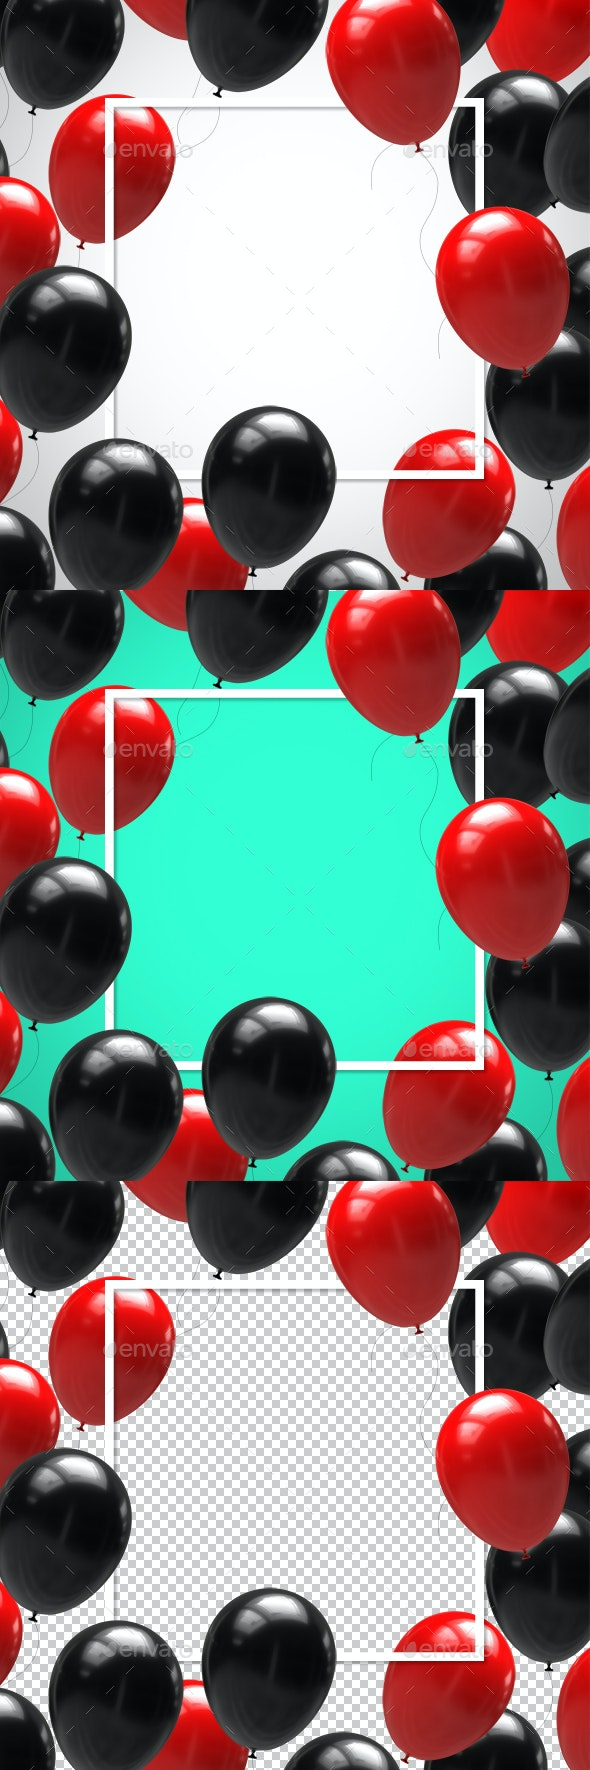 Balloons Red and Black in Square Frame - Objects 3D Renders